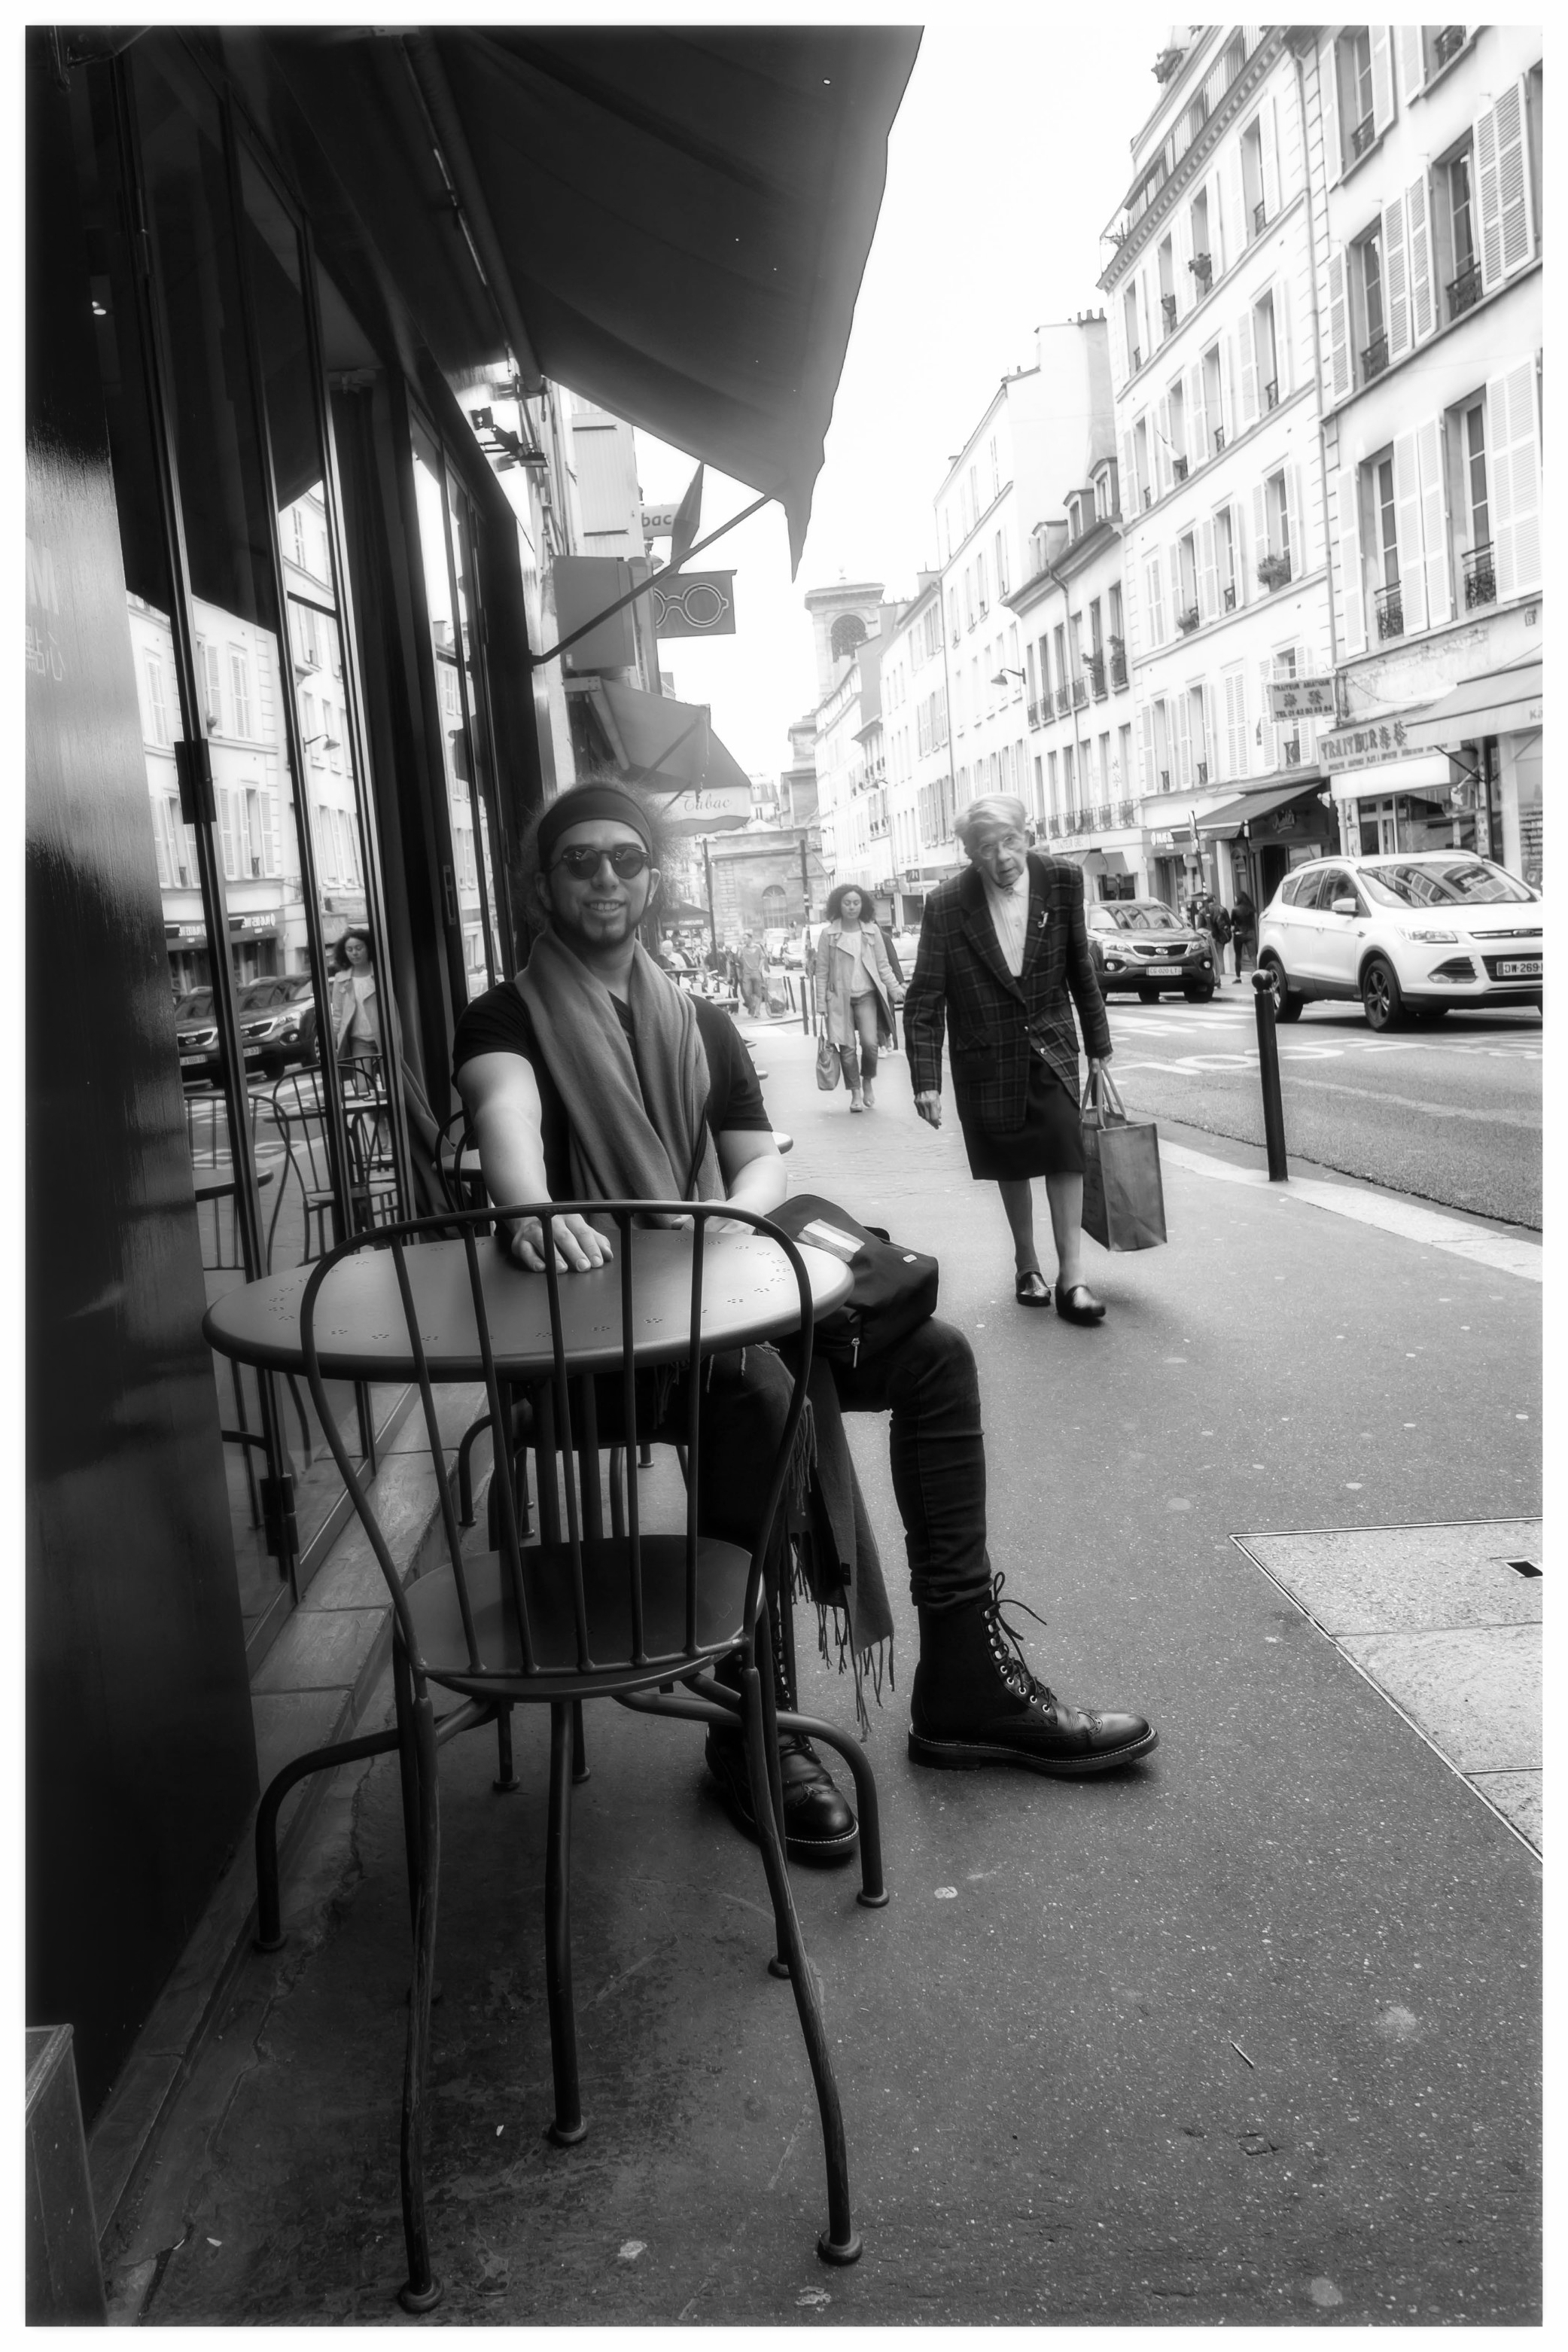 'Elegant Lady with Groceries', June 2016, Paris. Photograph